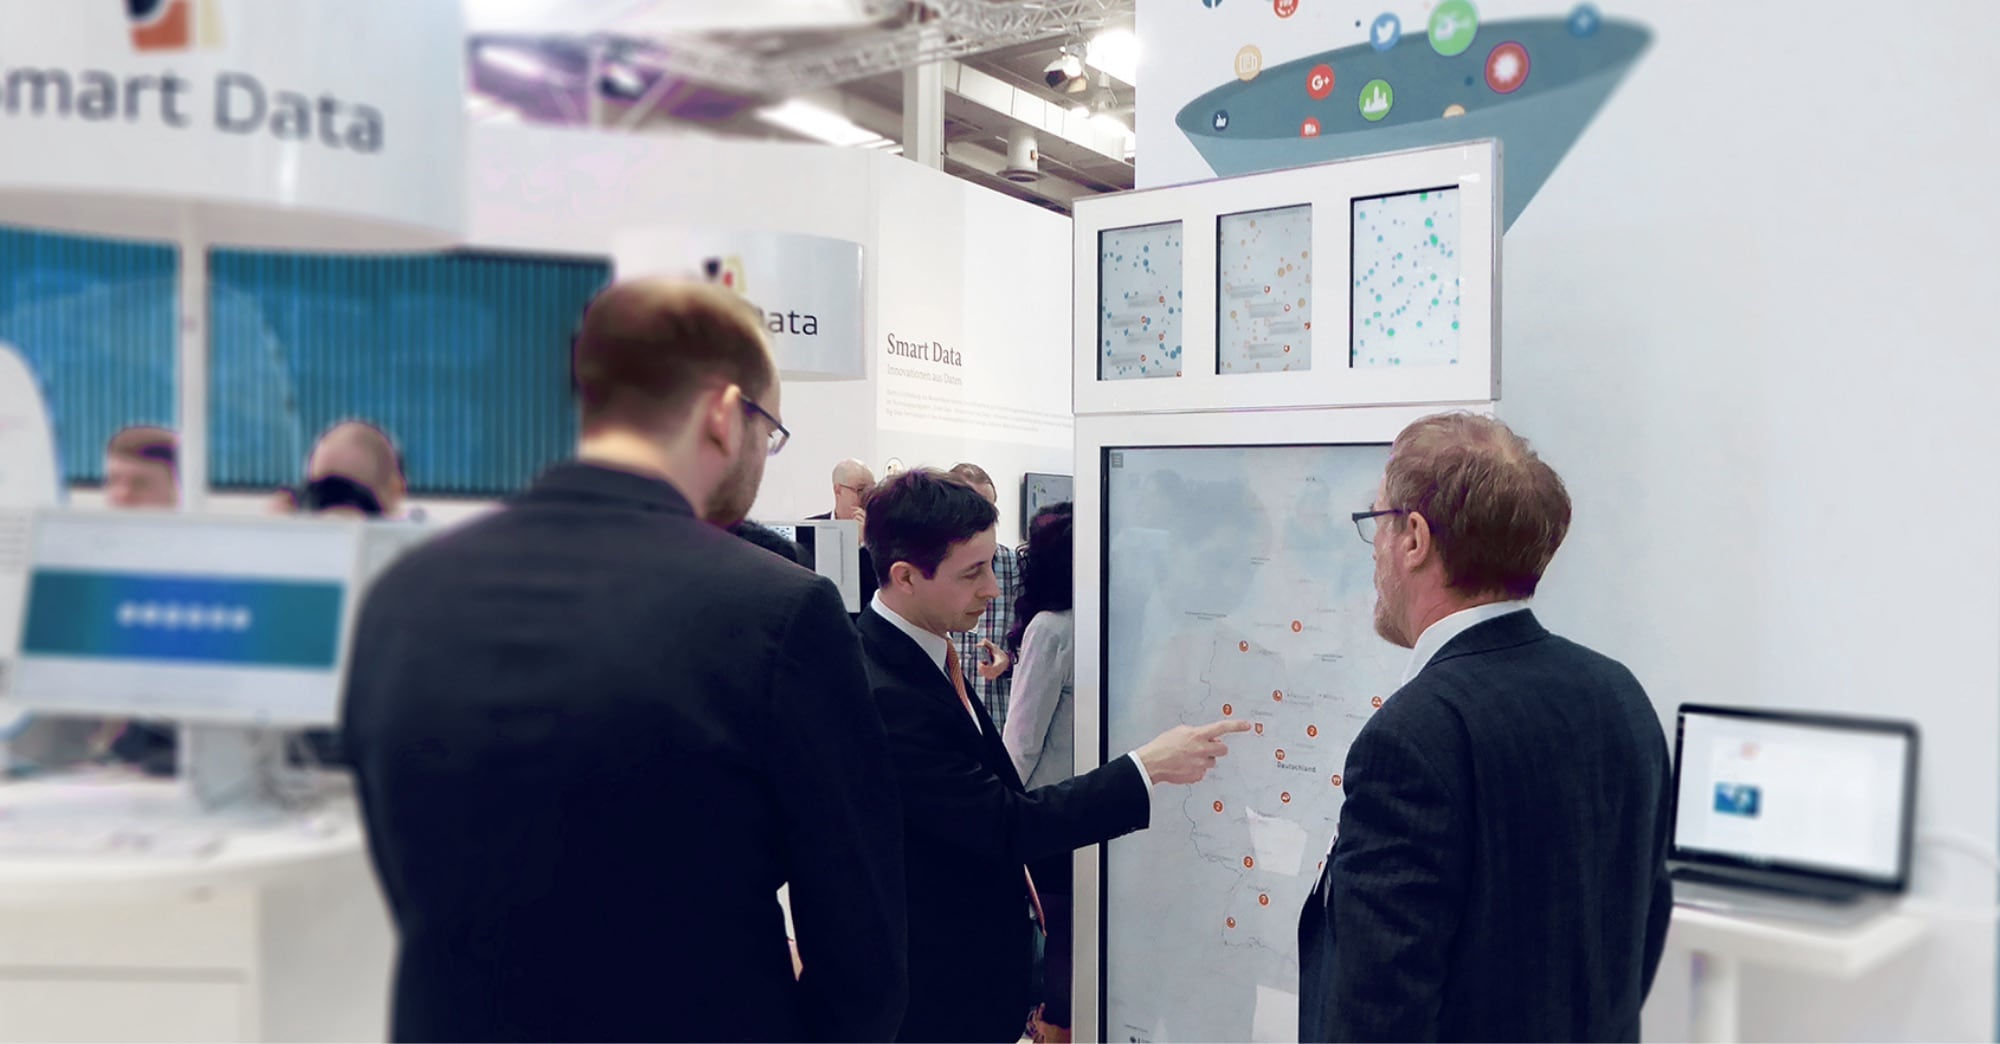 Interactive big data visualization at the CeBIT trade show